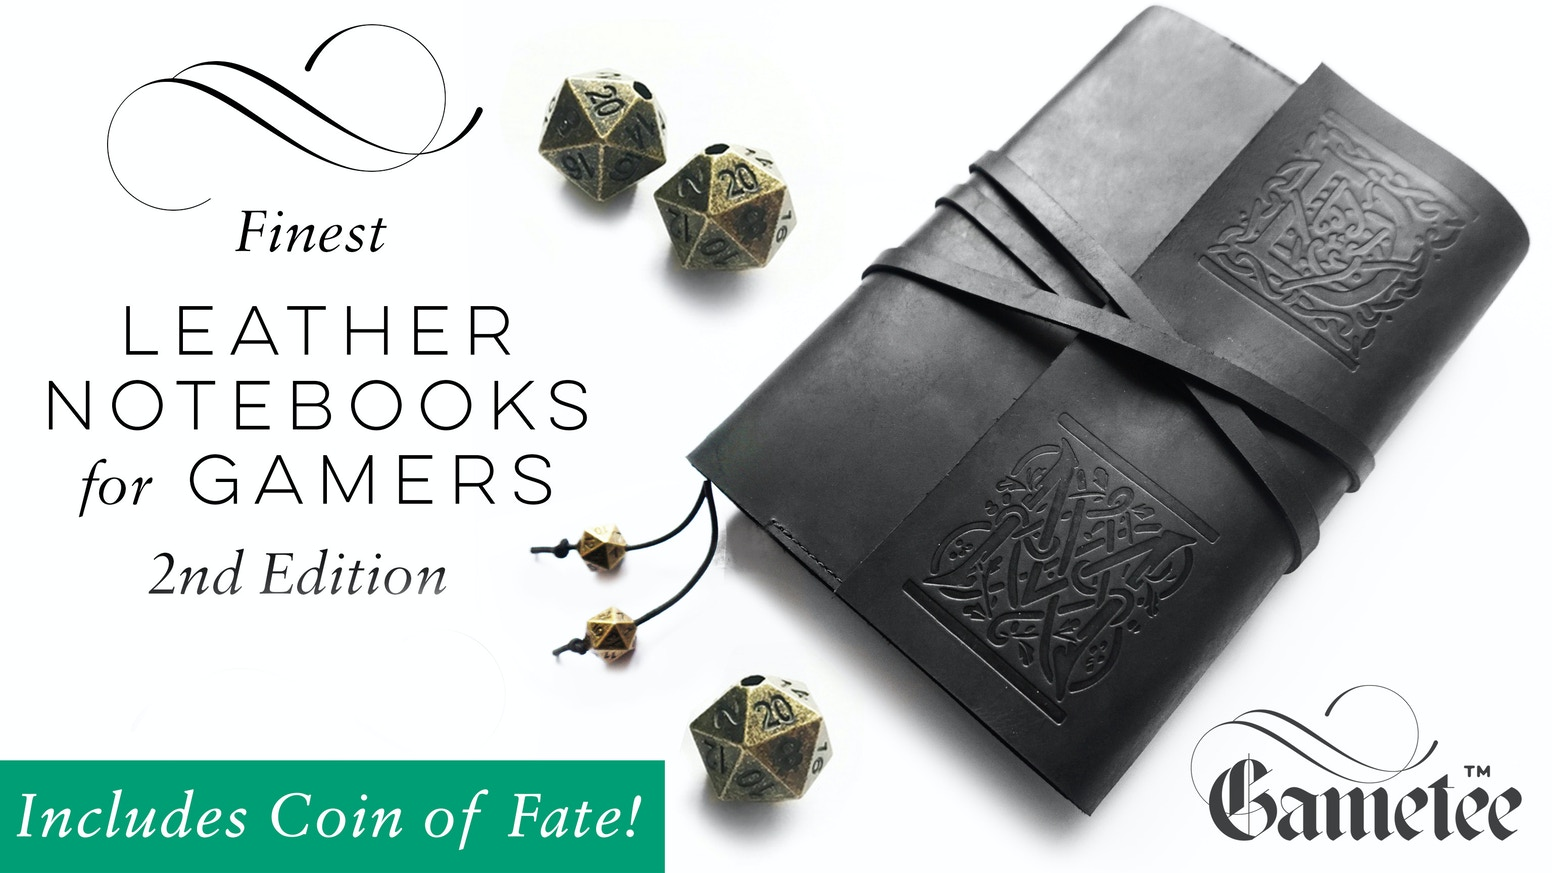 ALL NEW Refillable Leather Gaming Journals to assist you in creating masterful, memorable tabletop campaigns.